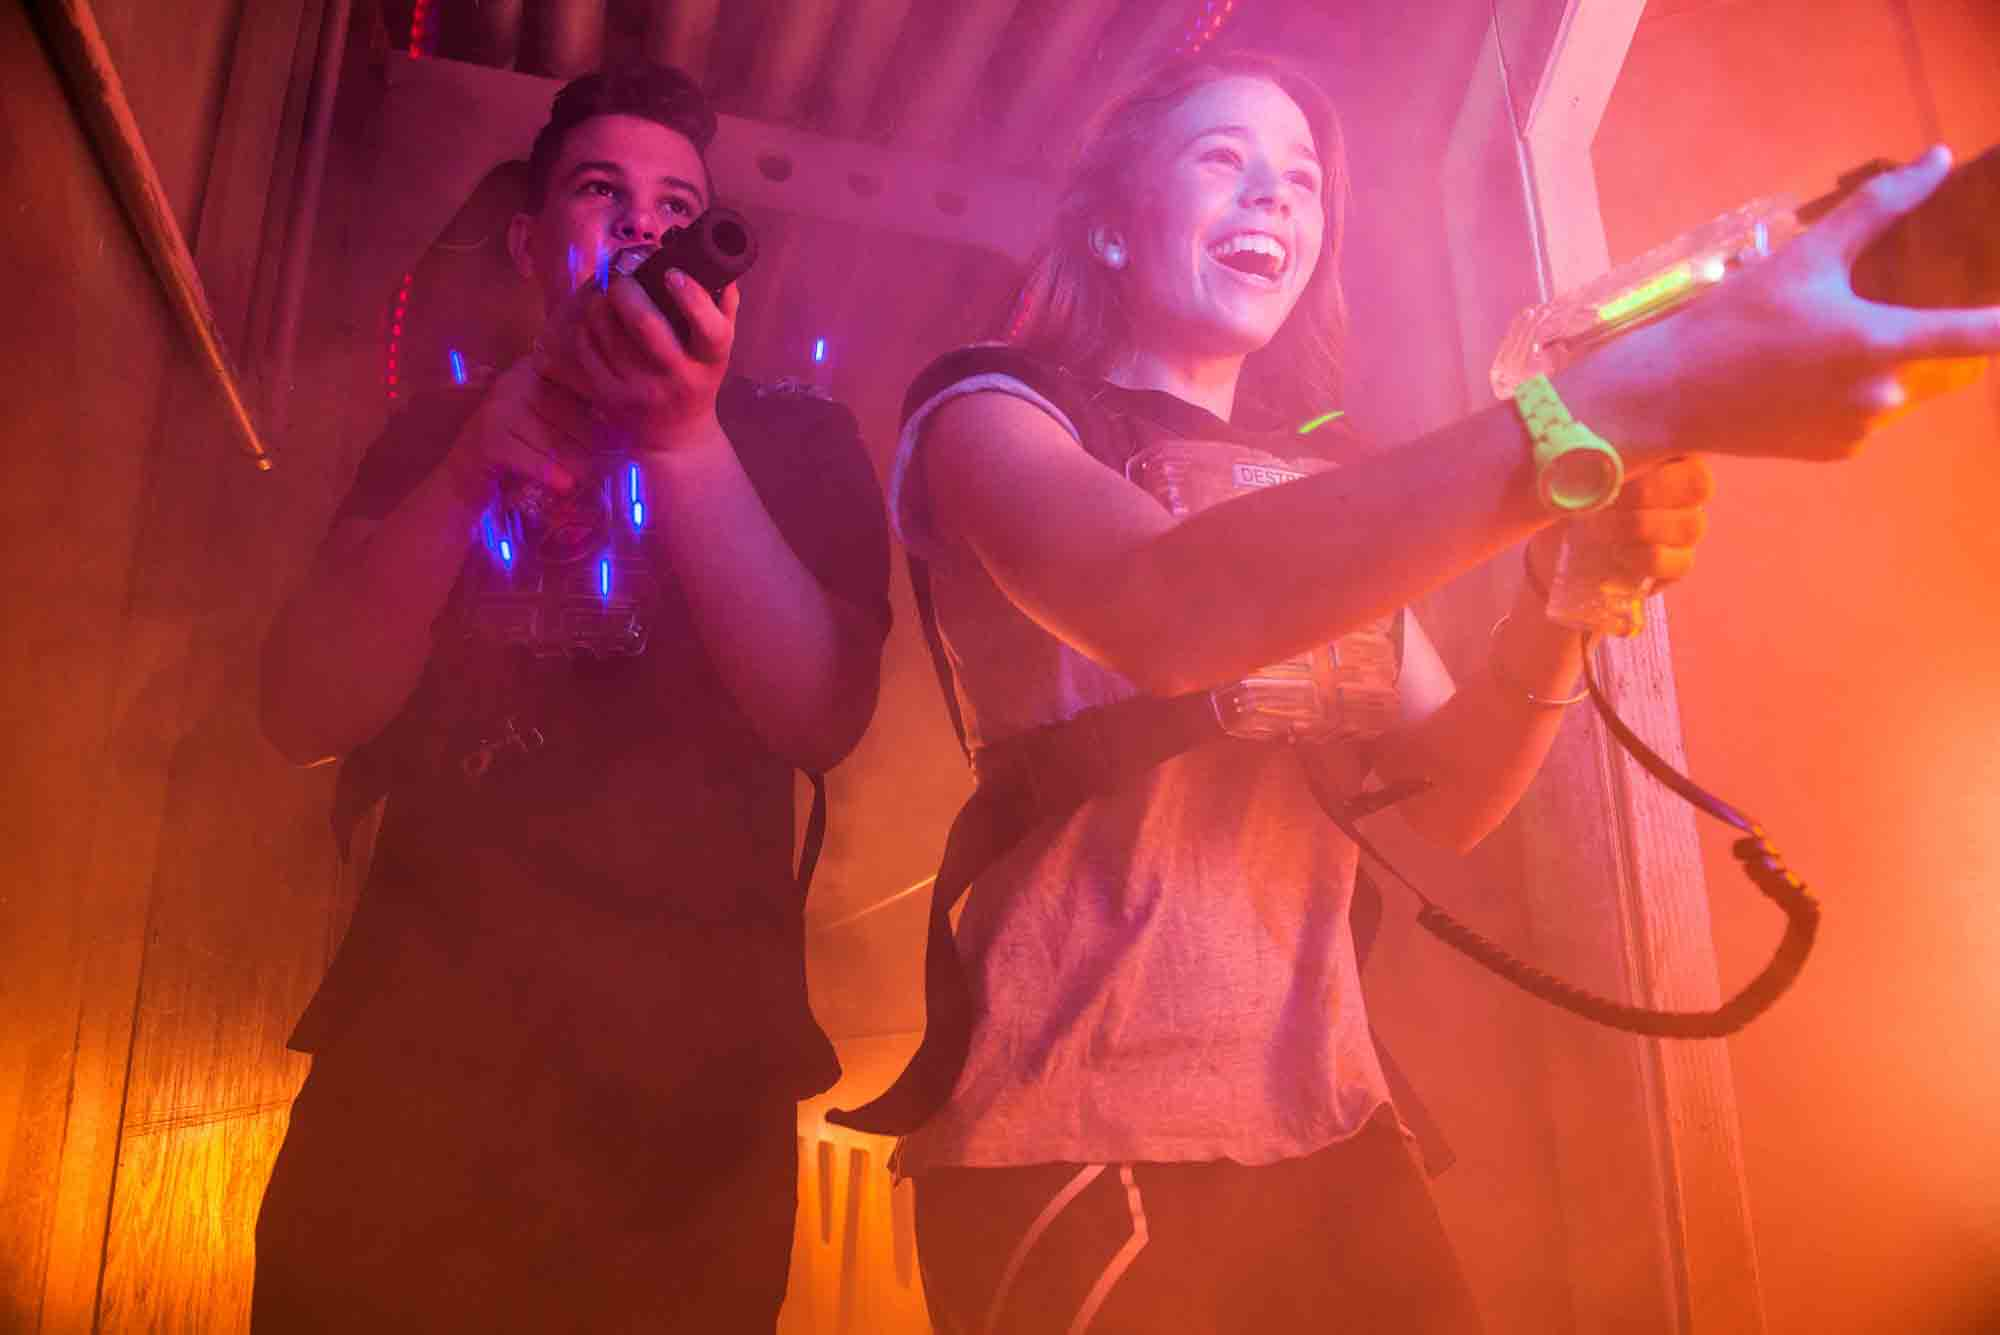 Teen Party Lazer Tag